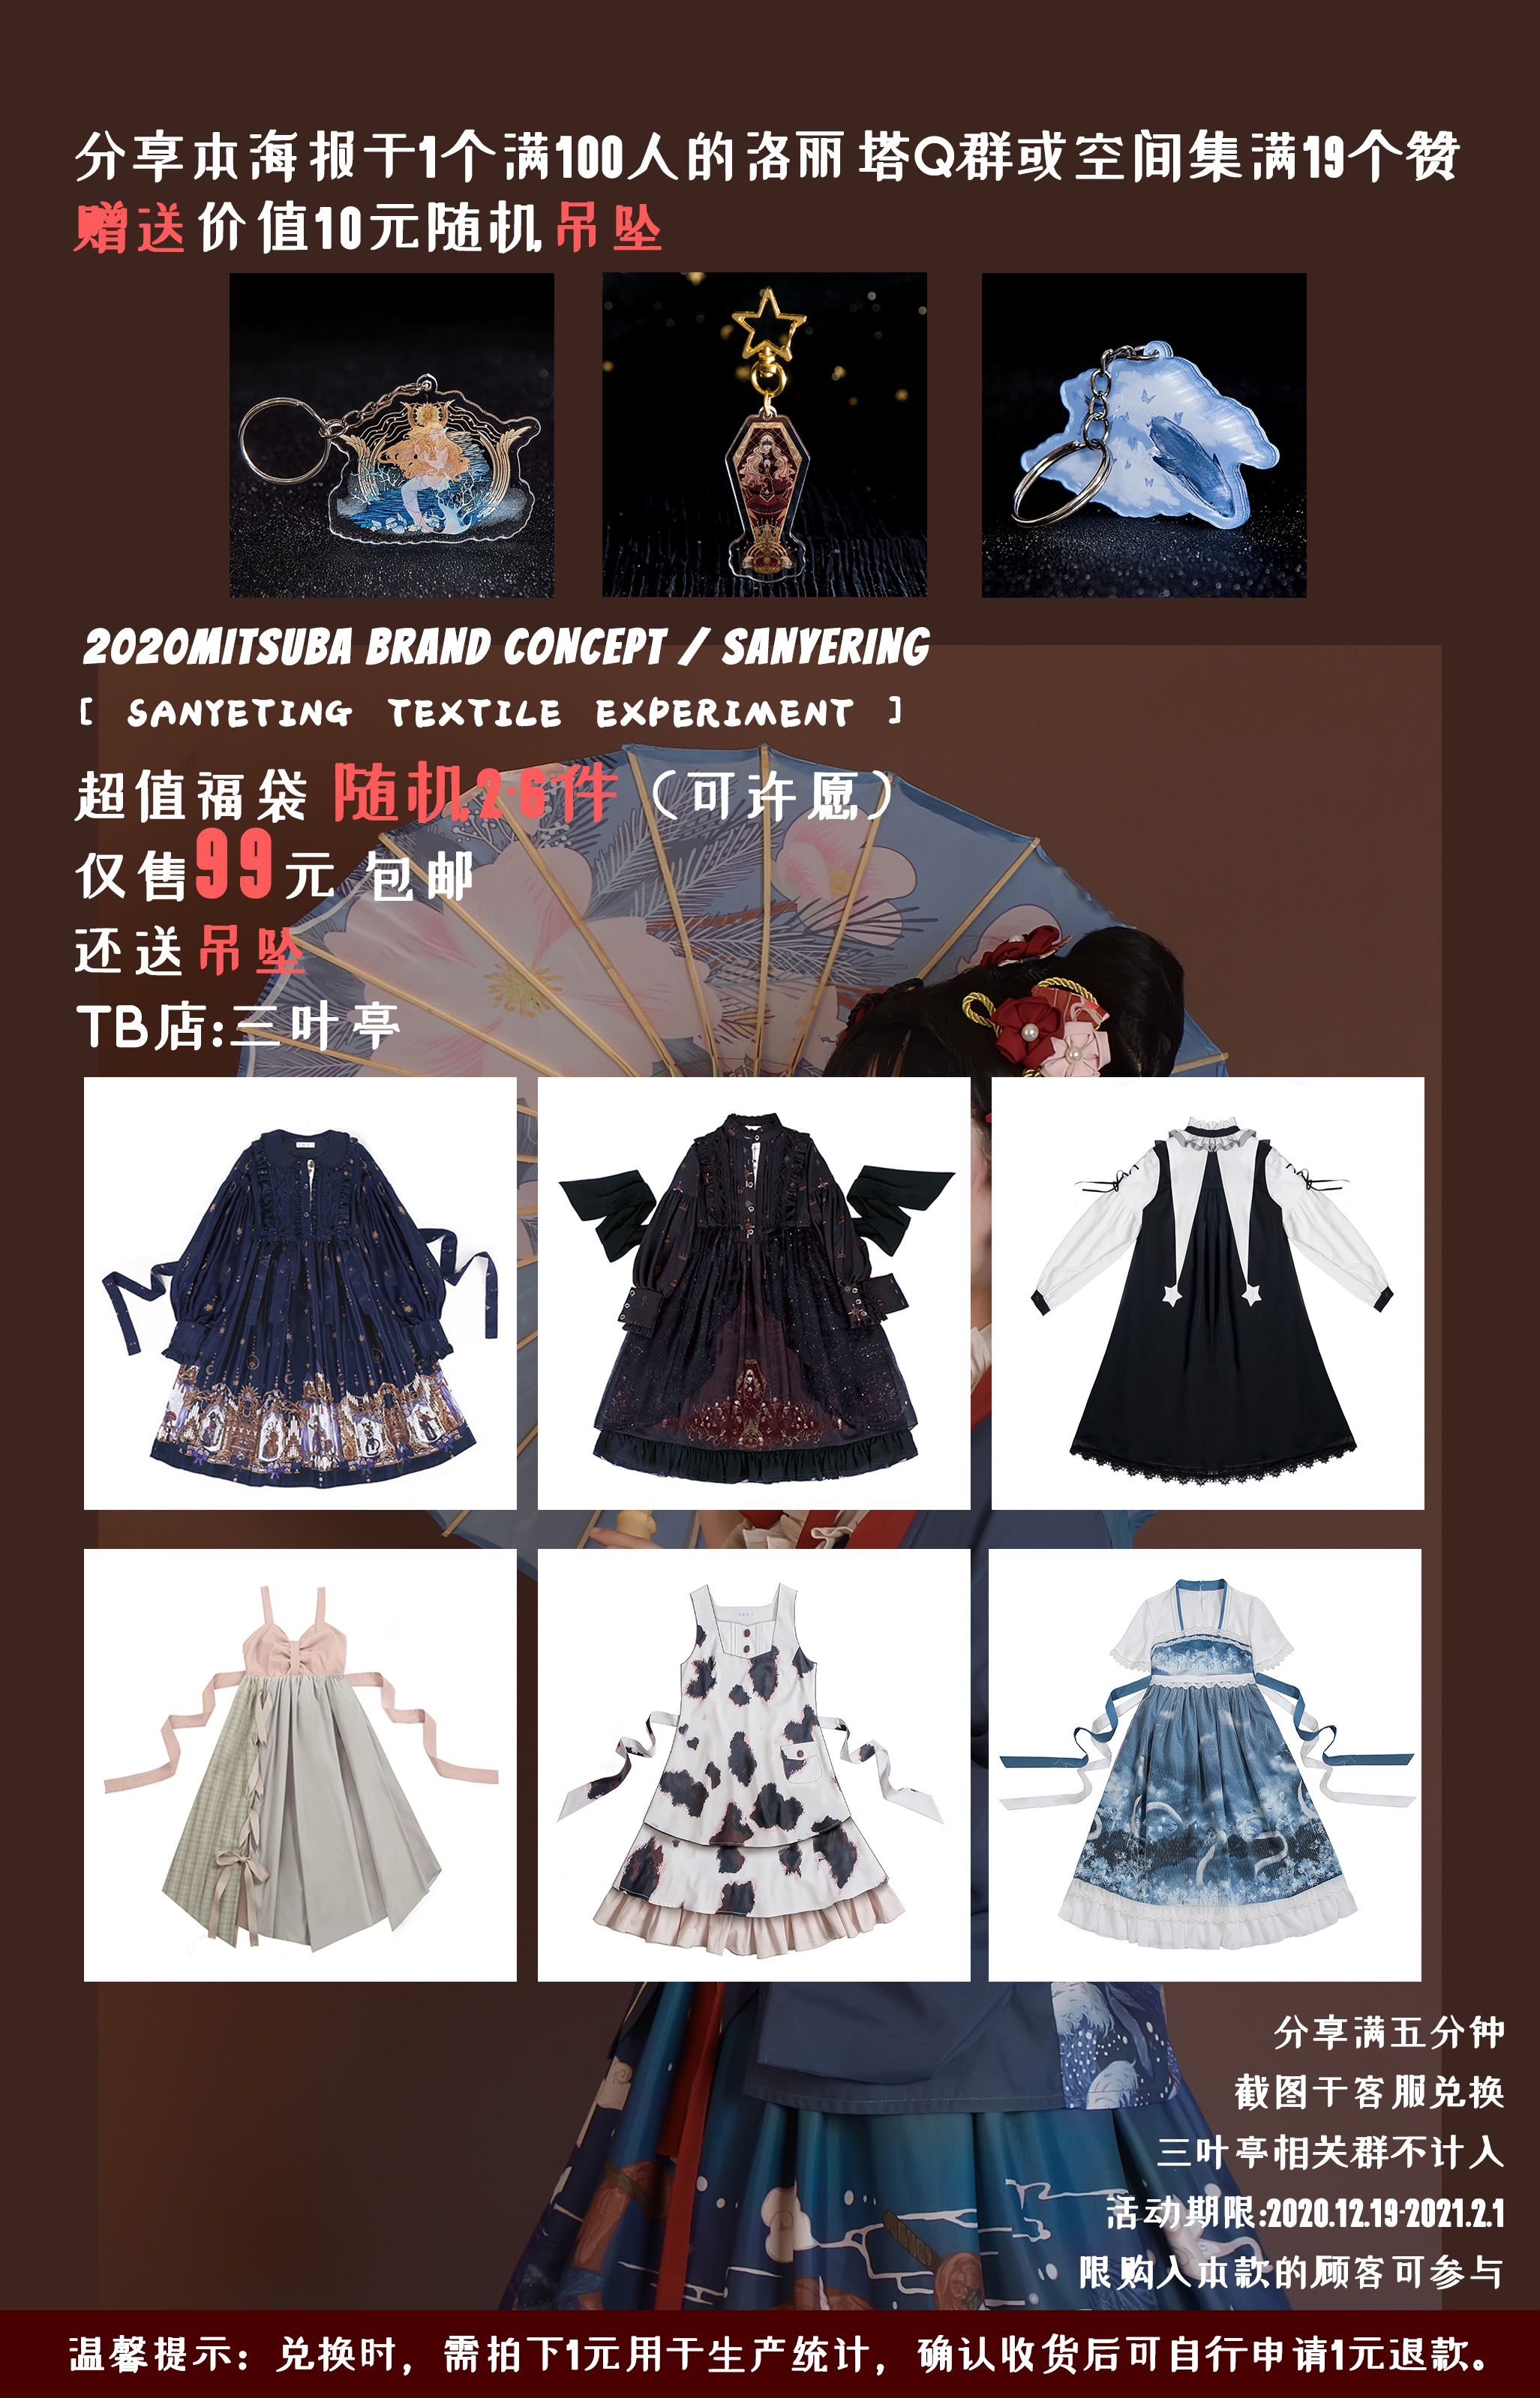 Sanyeting genuine experience pack 2-6 pieces Lolita JK skirt jacket with accessories